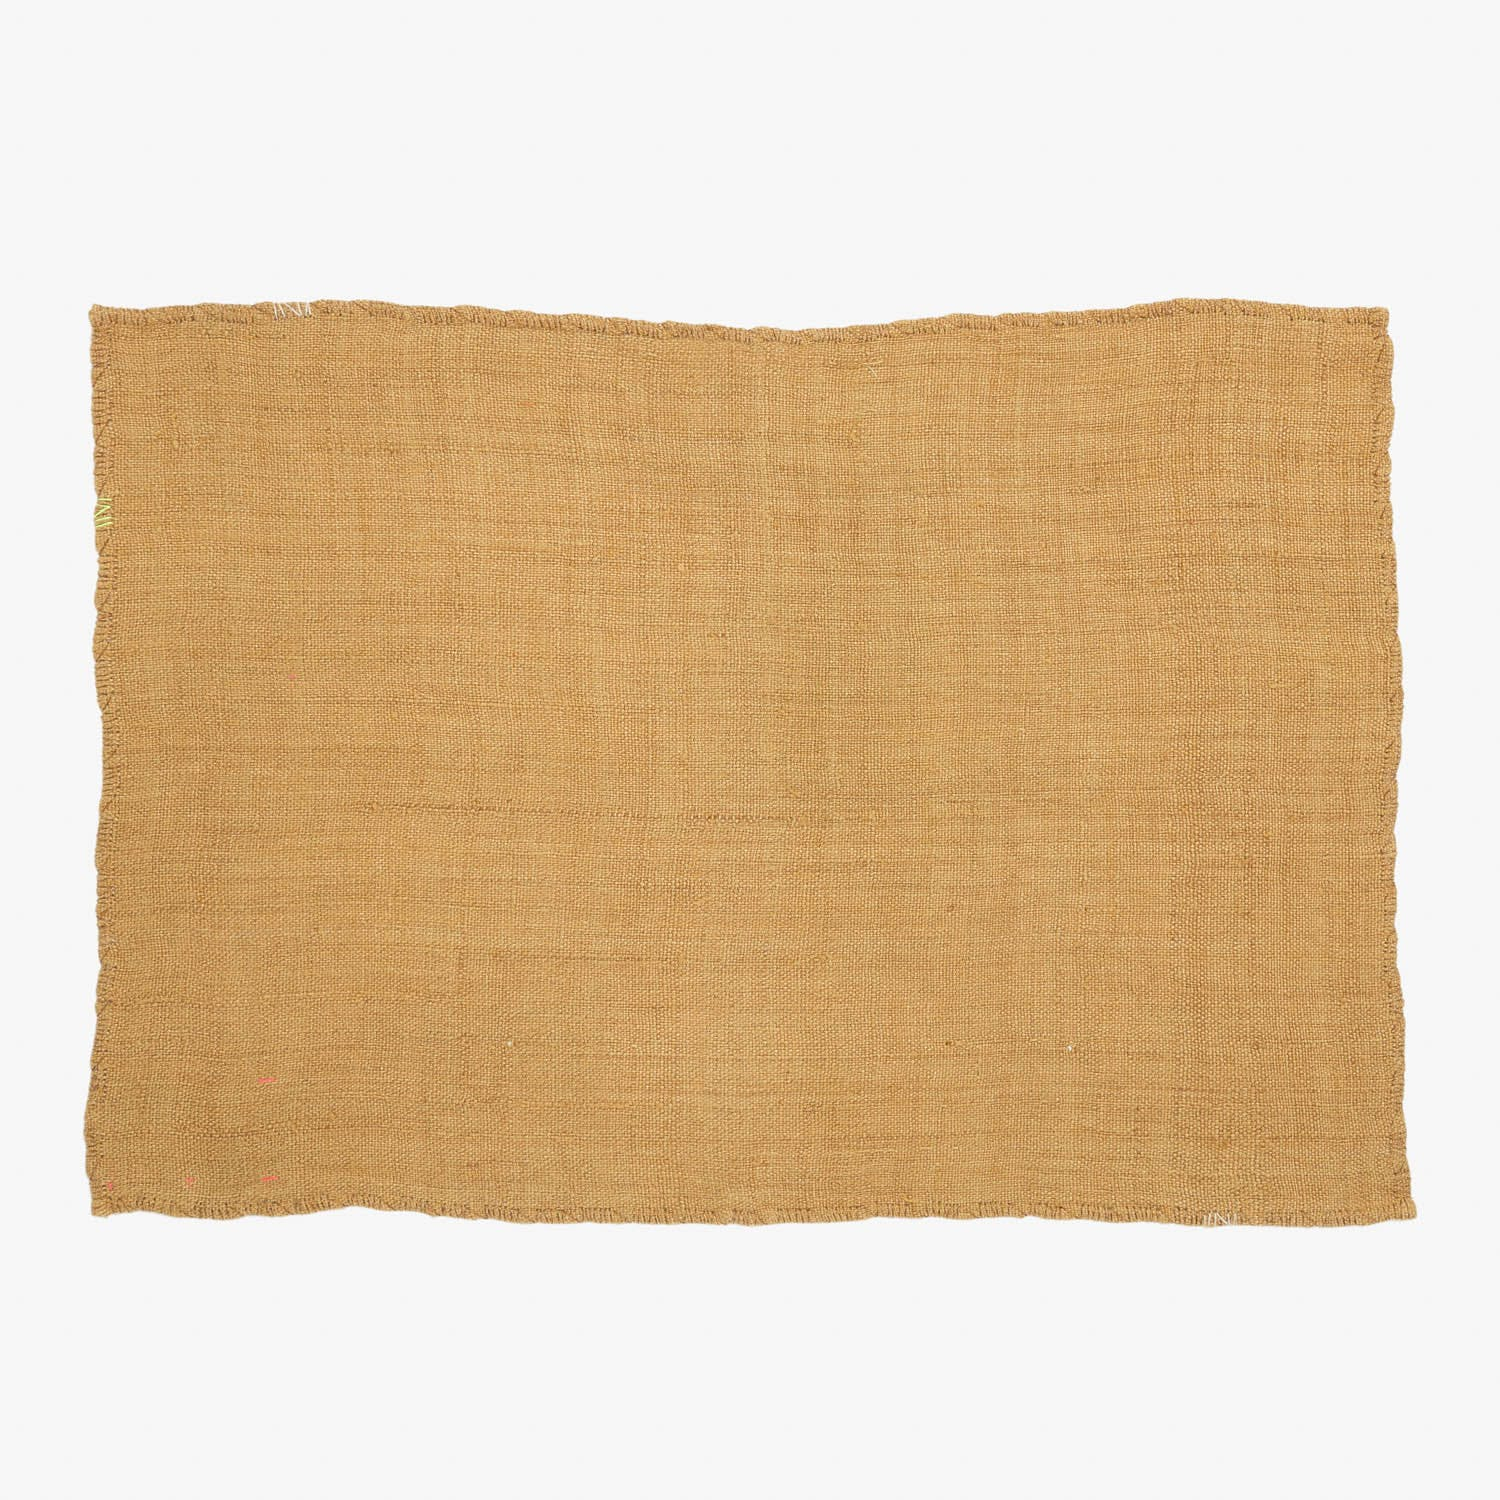 abcDNA Glo Linen Placemat Acorn